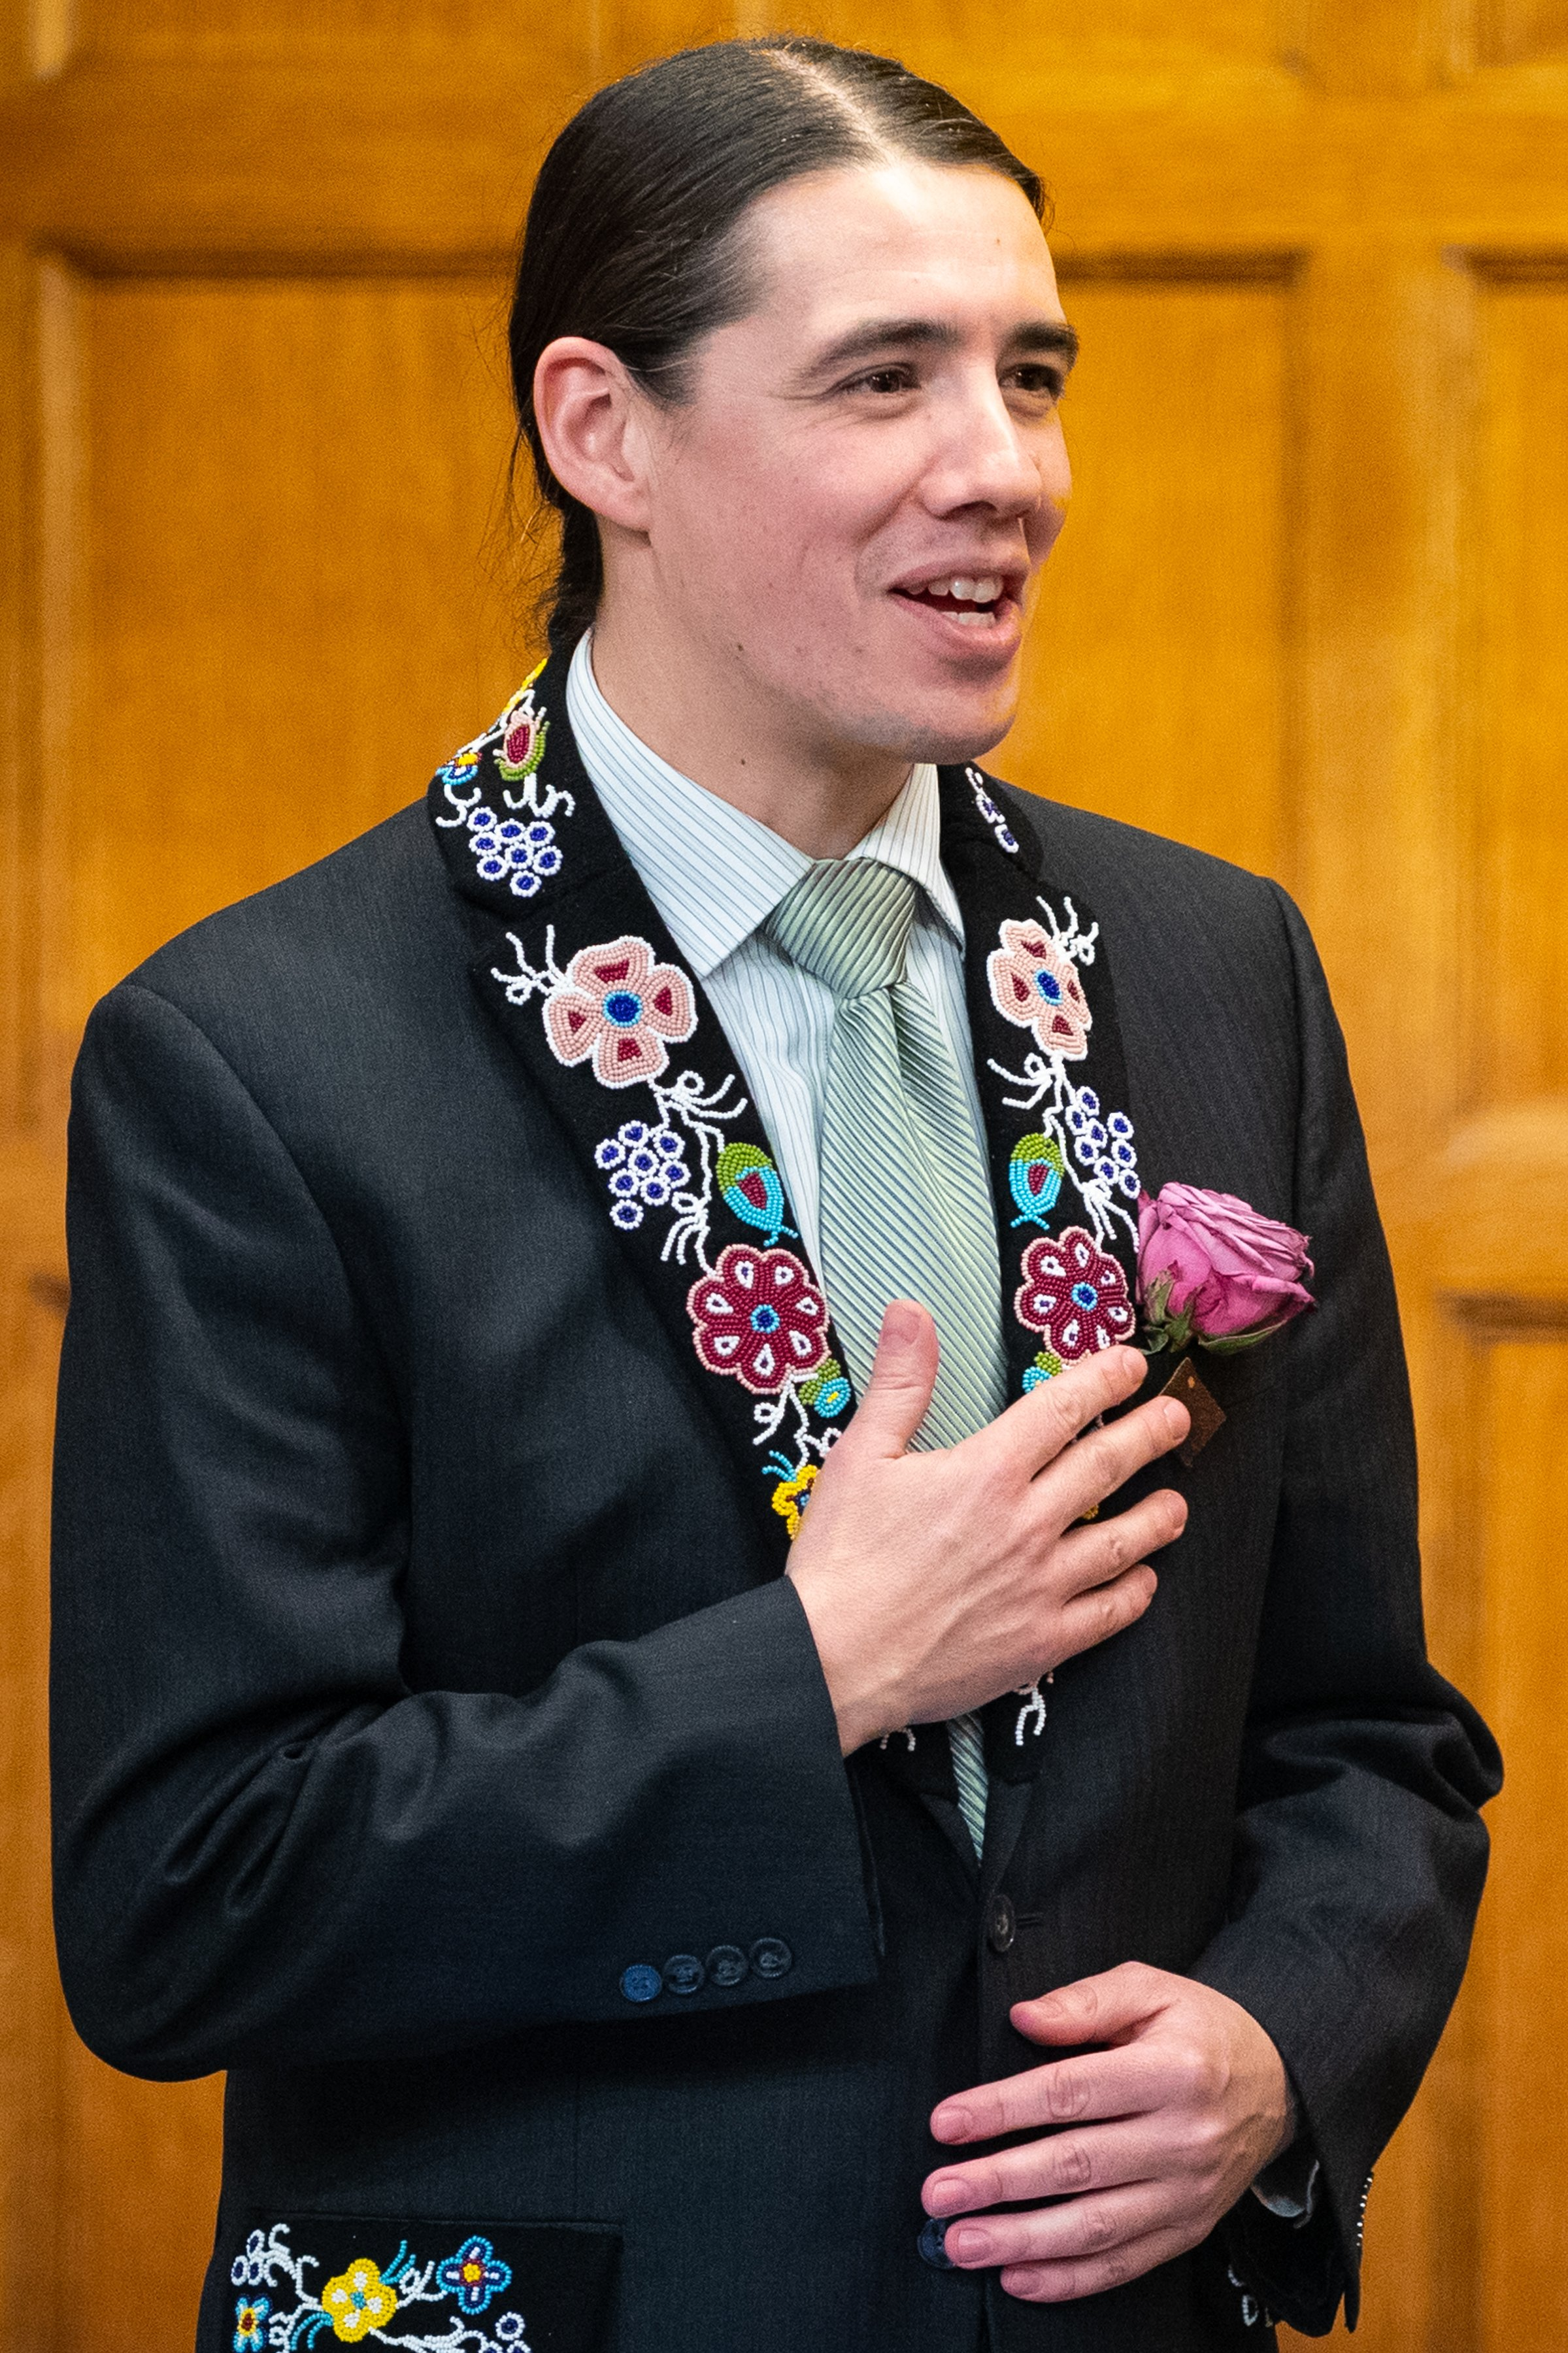 Robert-Falcon Ouellette.